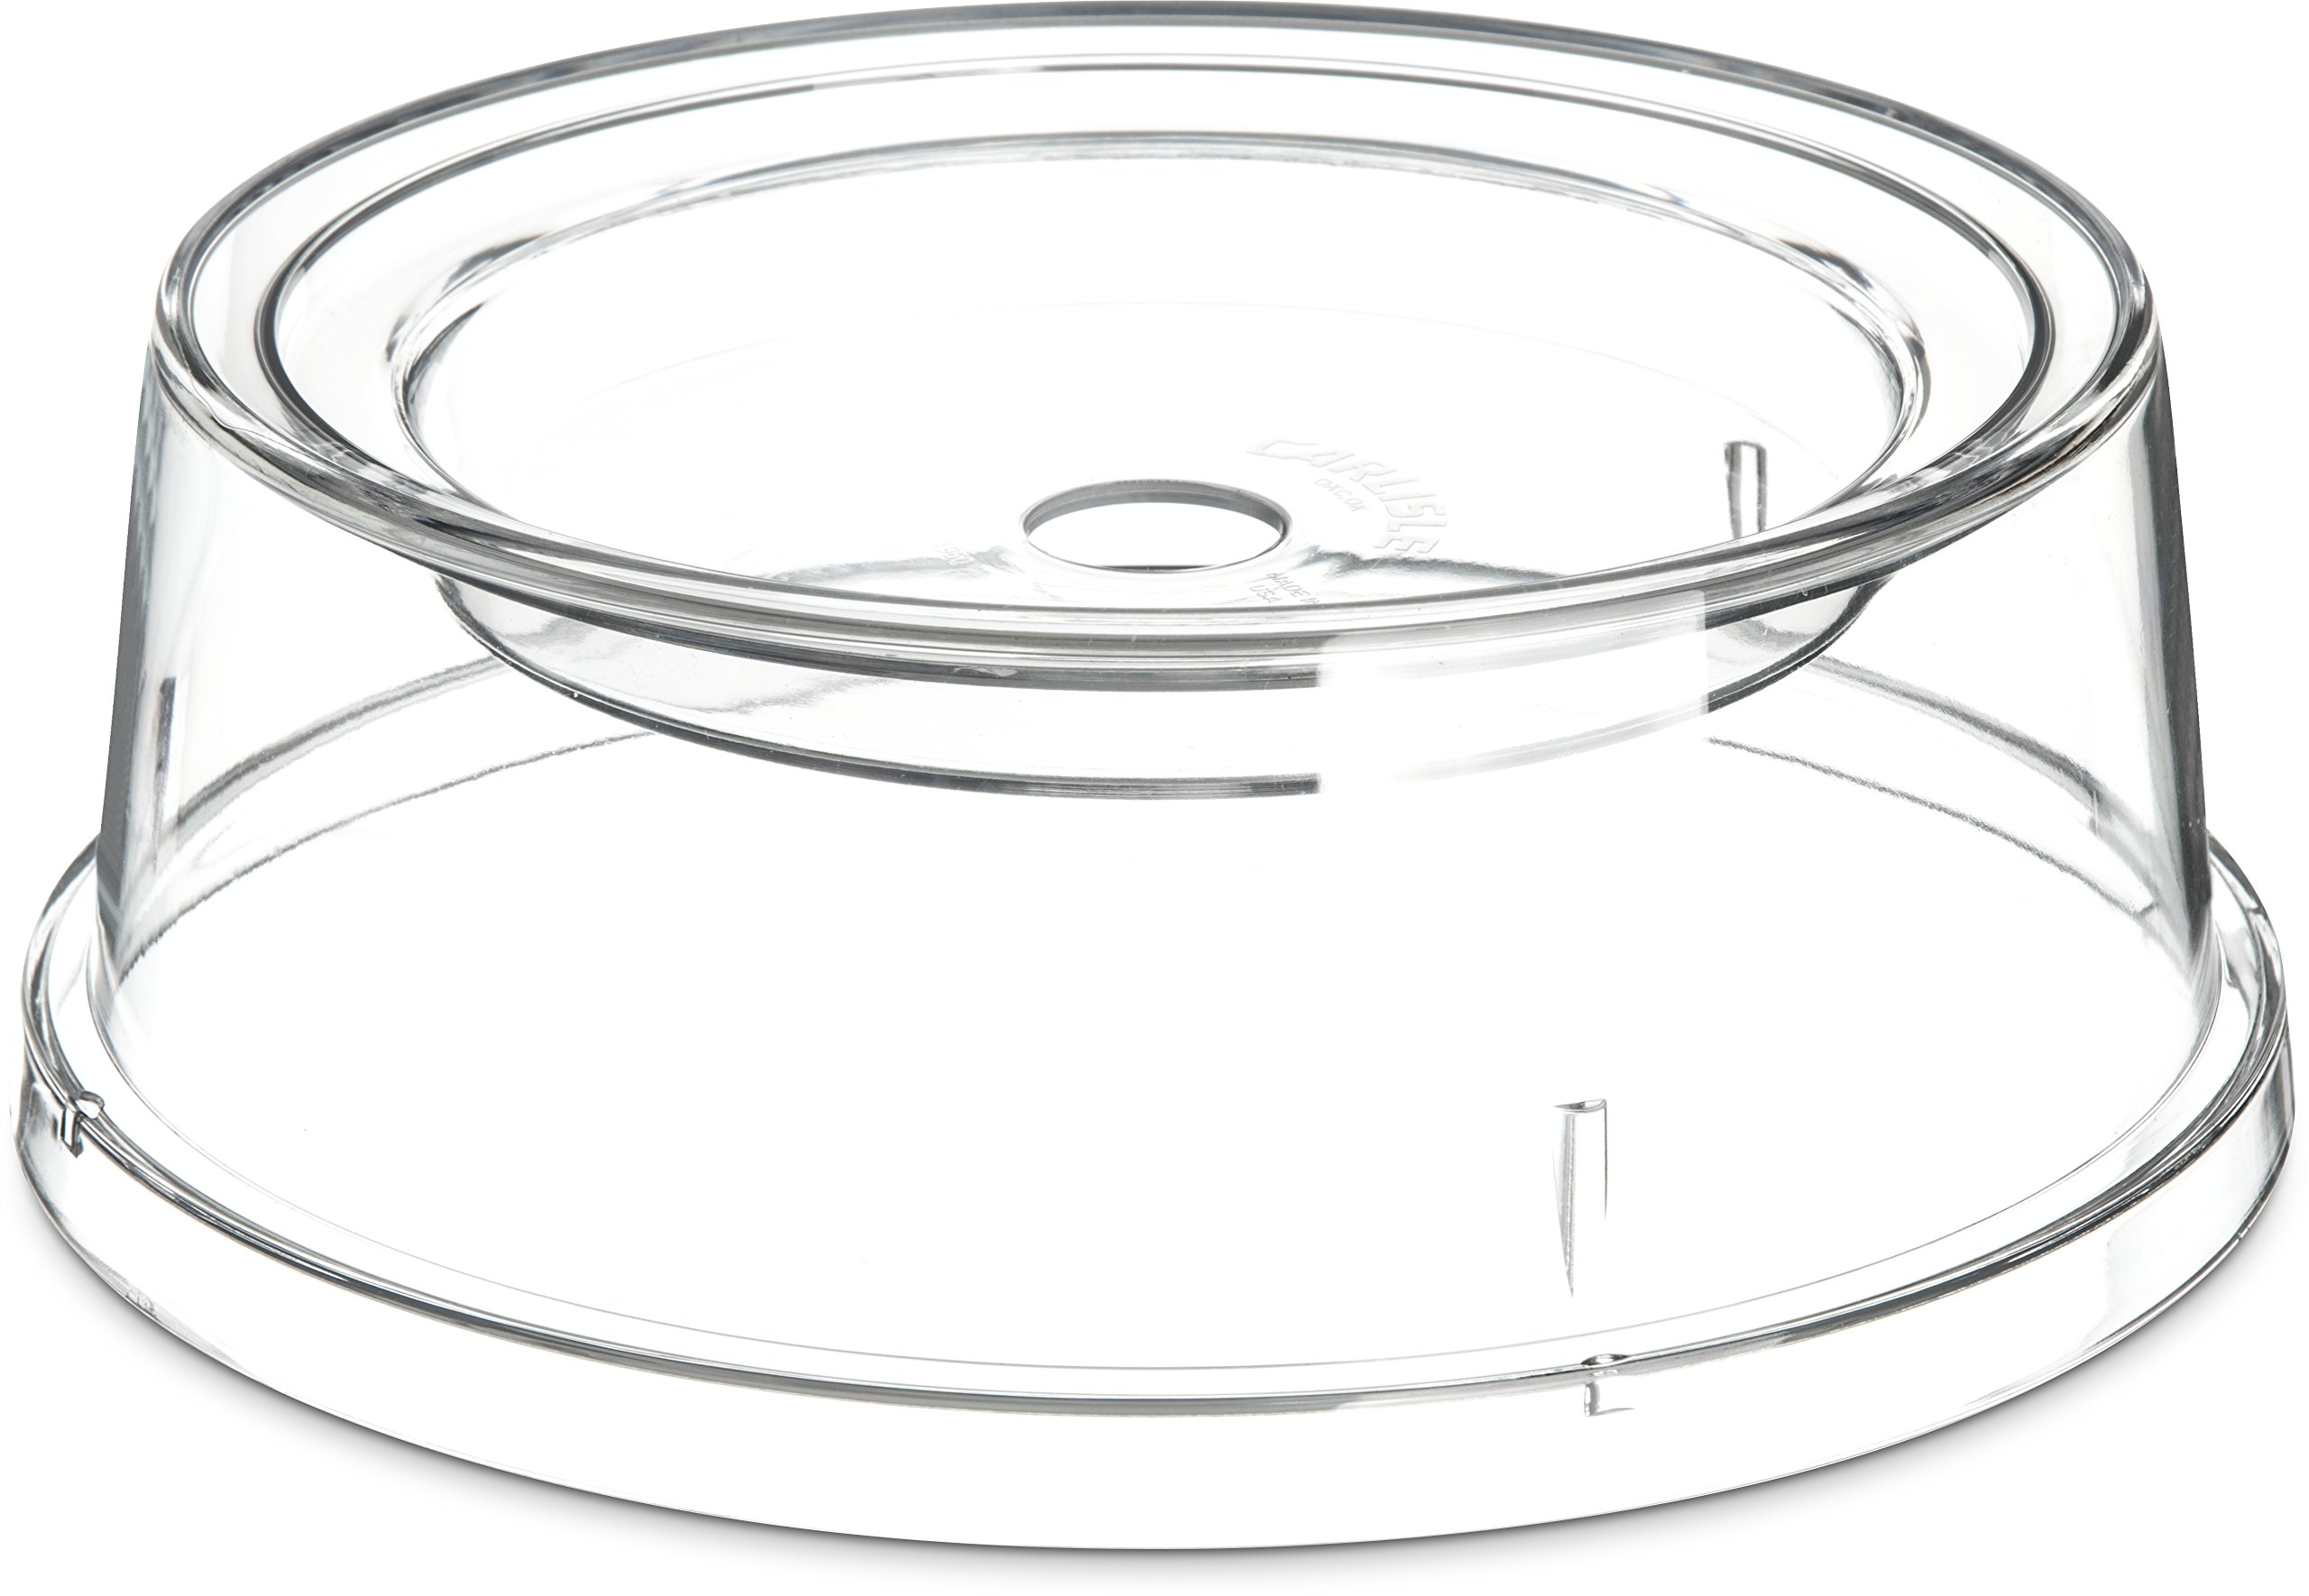 Carlisle 196007 Polycarbonate Plate and Bowl Cover, 9 x 3-13/32'', Clear (Case of 12)